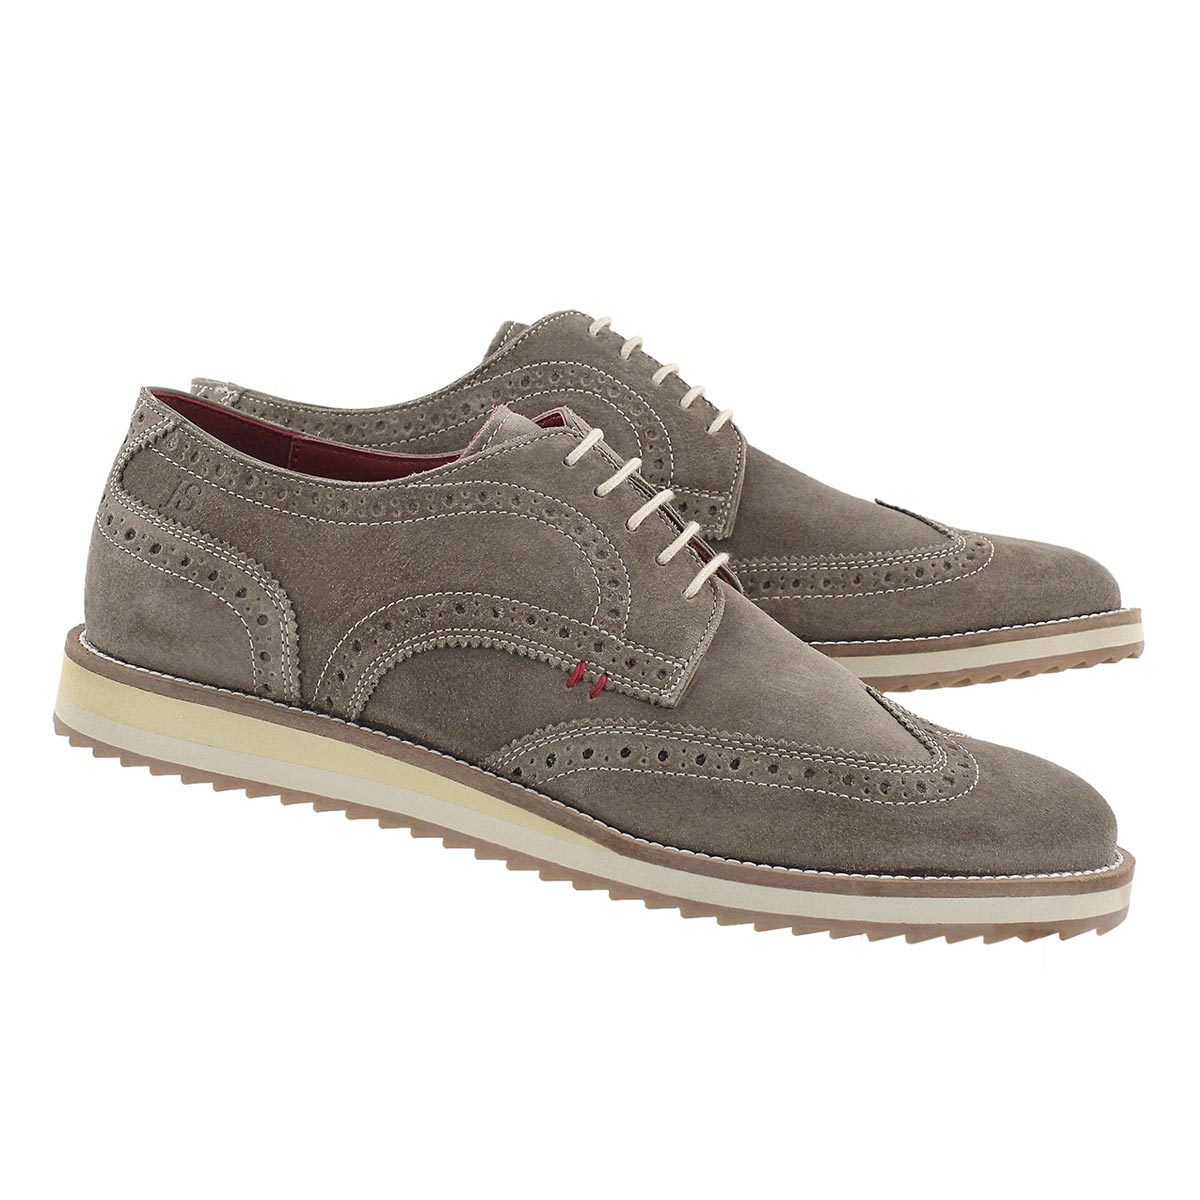 Mns Sven 01 taupe casual oxford